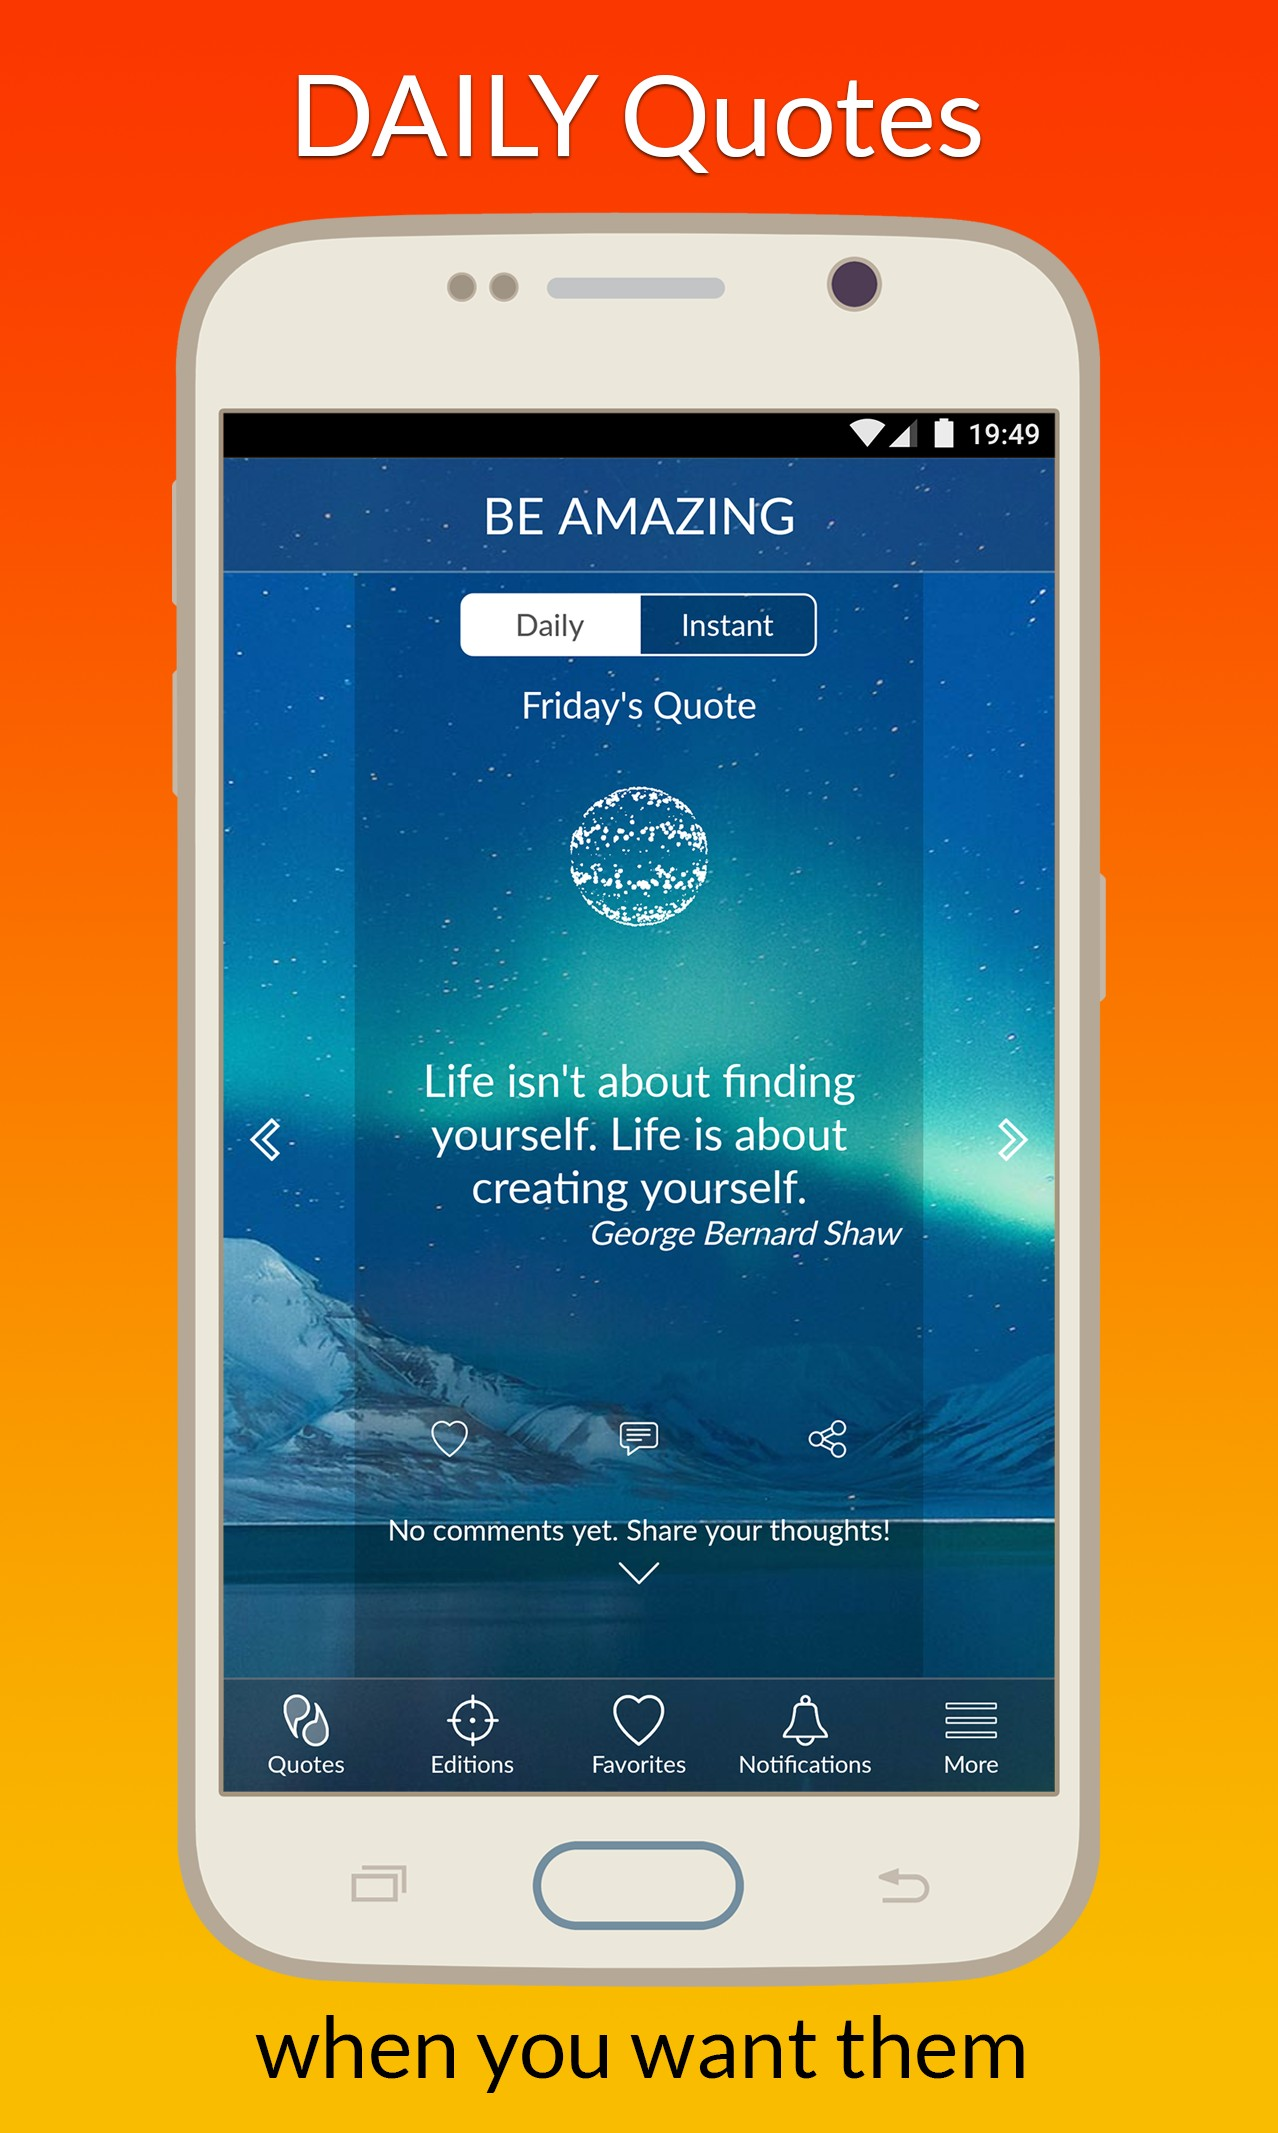 Best android  app intended to deliver motivational quote every day